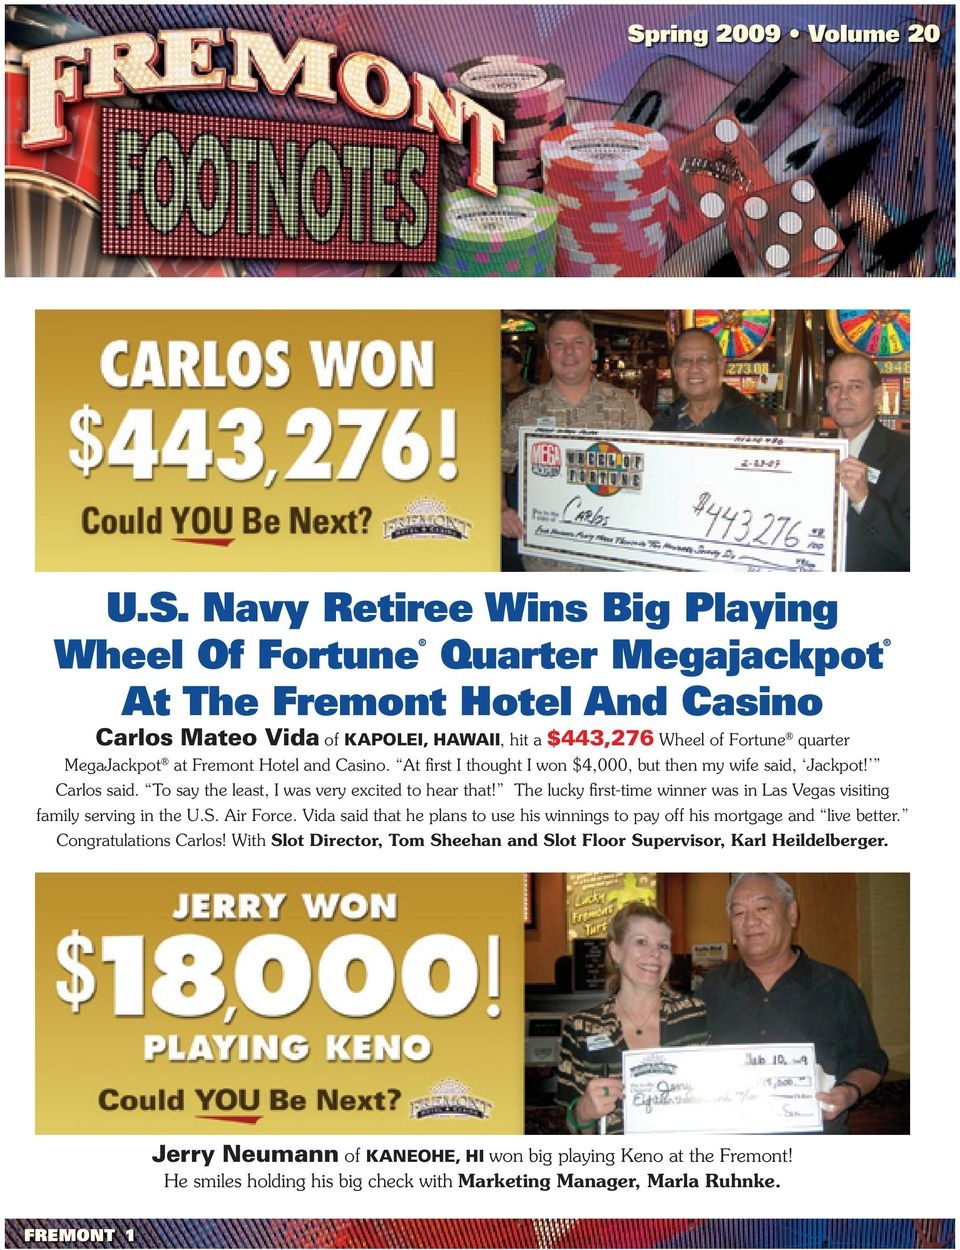 The lucky first-time winner was in Las Vegas visiting family serving in the U.S. Air Force. Vida said that he plans to use his winnings to pay off his mortgage and live better. Congratulations Carlos!